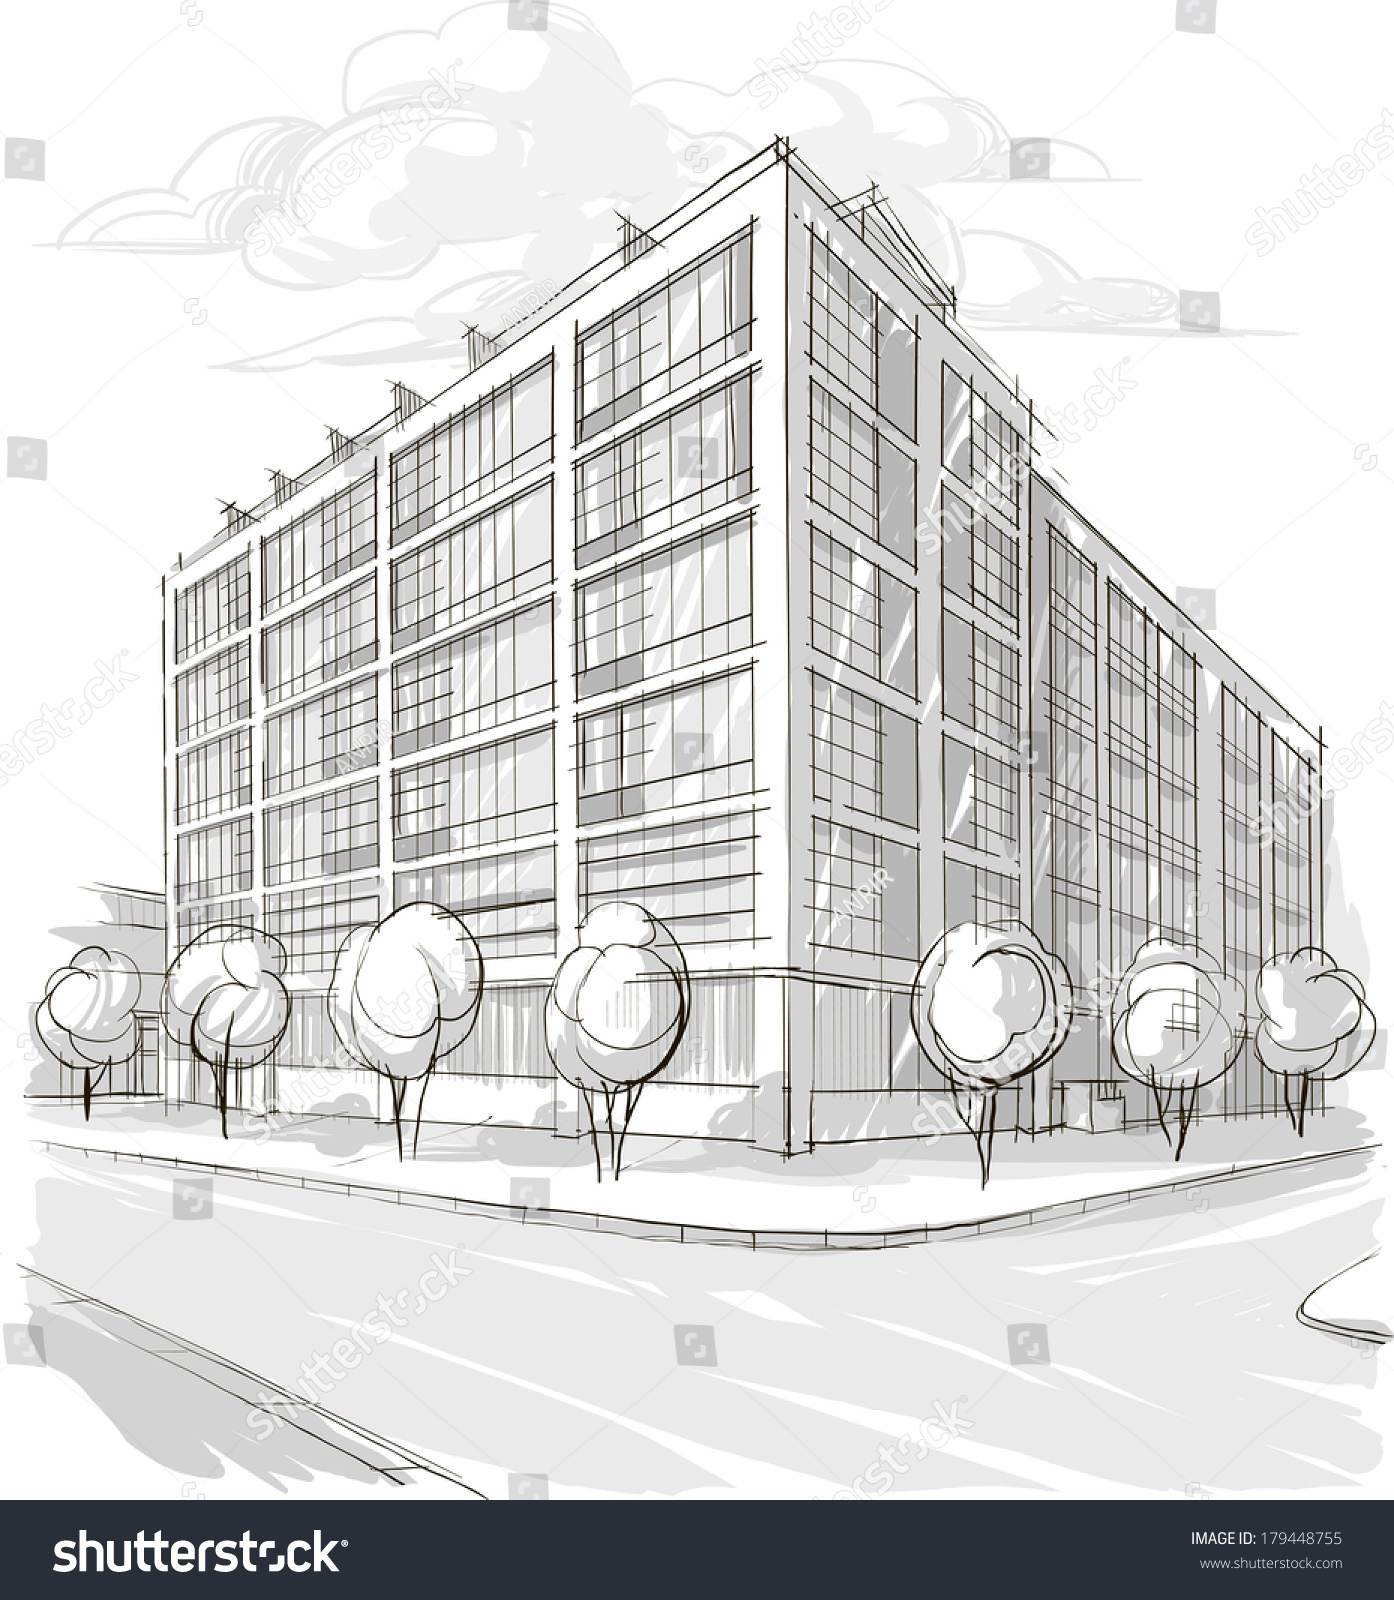 Architecture Sketch Drawing Buildingcity Stock Vector 179448755 - Shutterstock